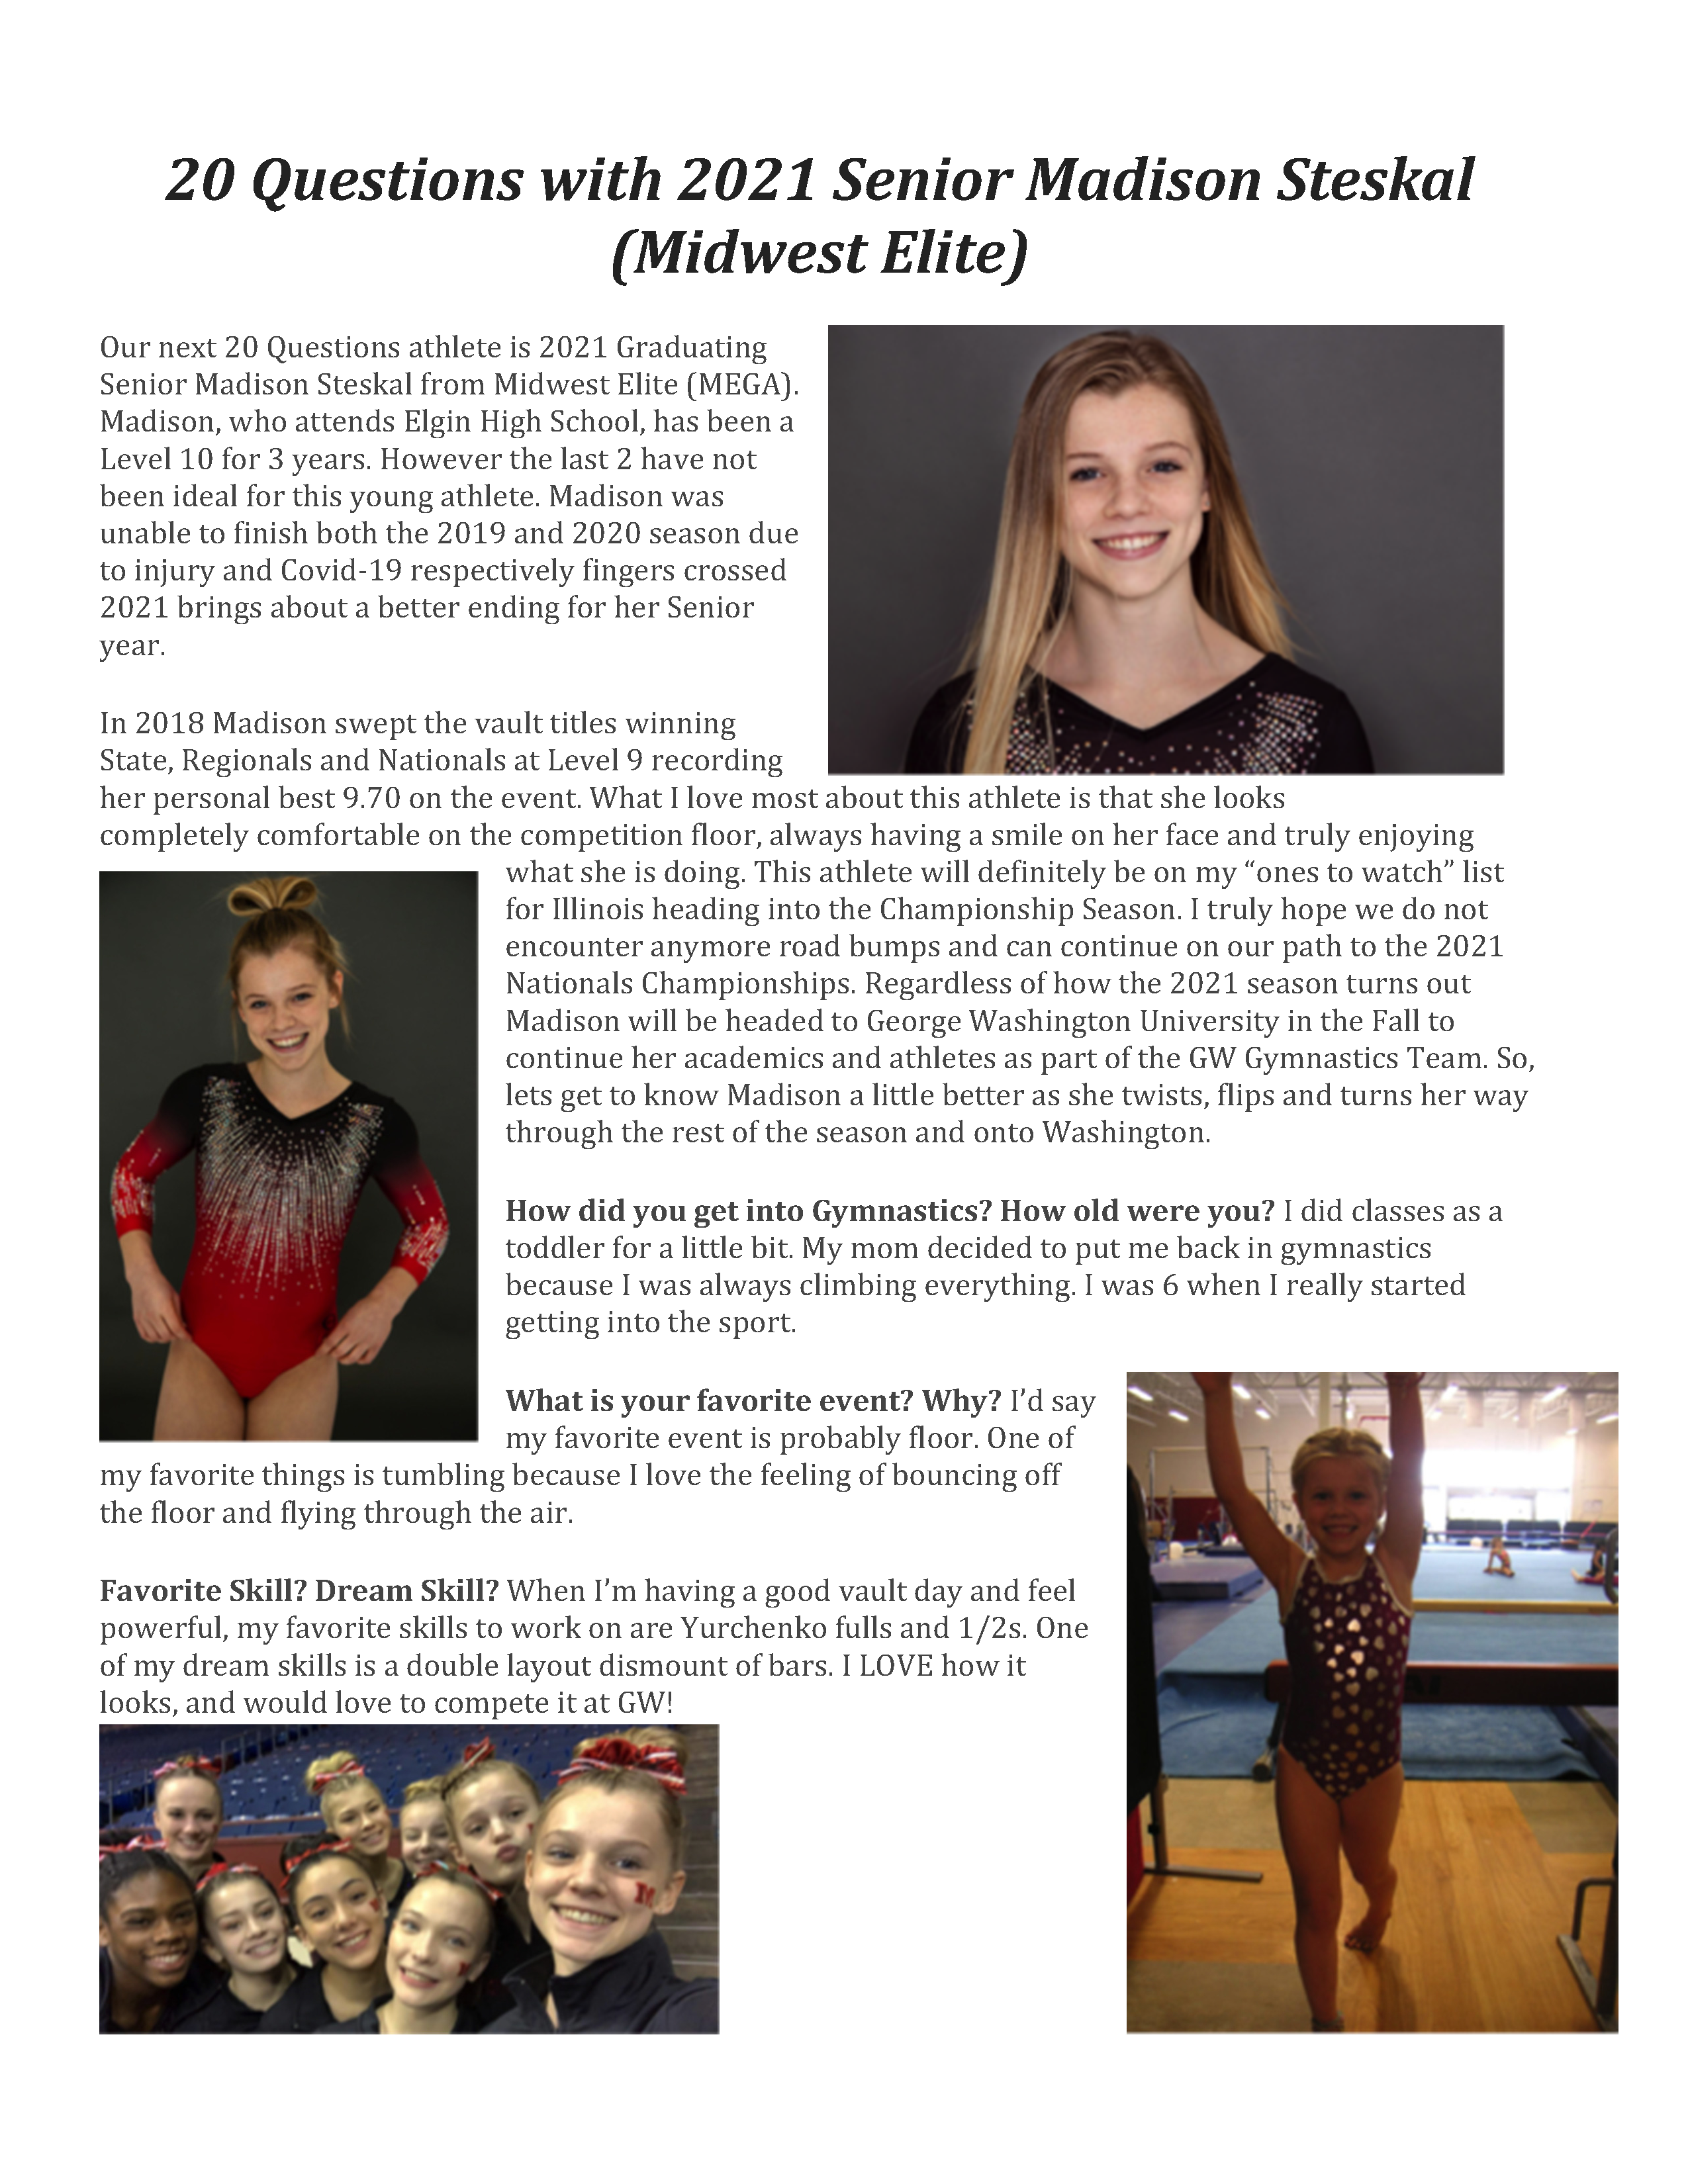 20 Questions with 2021 Senior Madison Steskal_Page_1